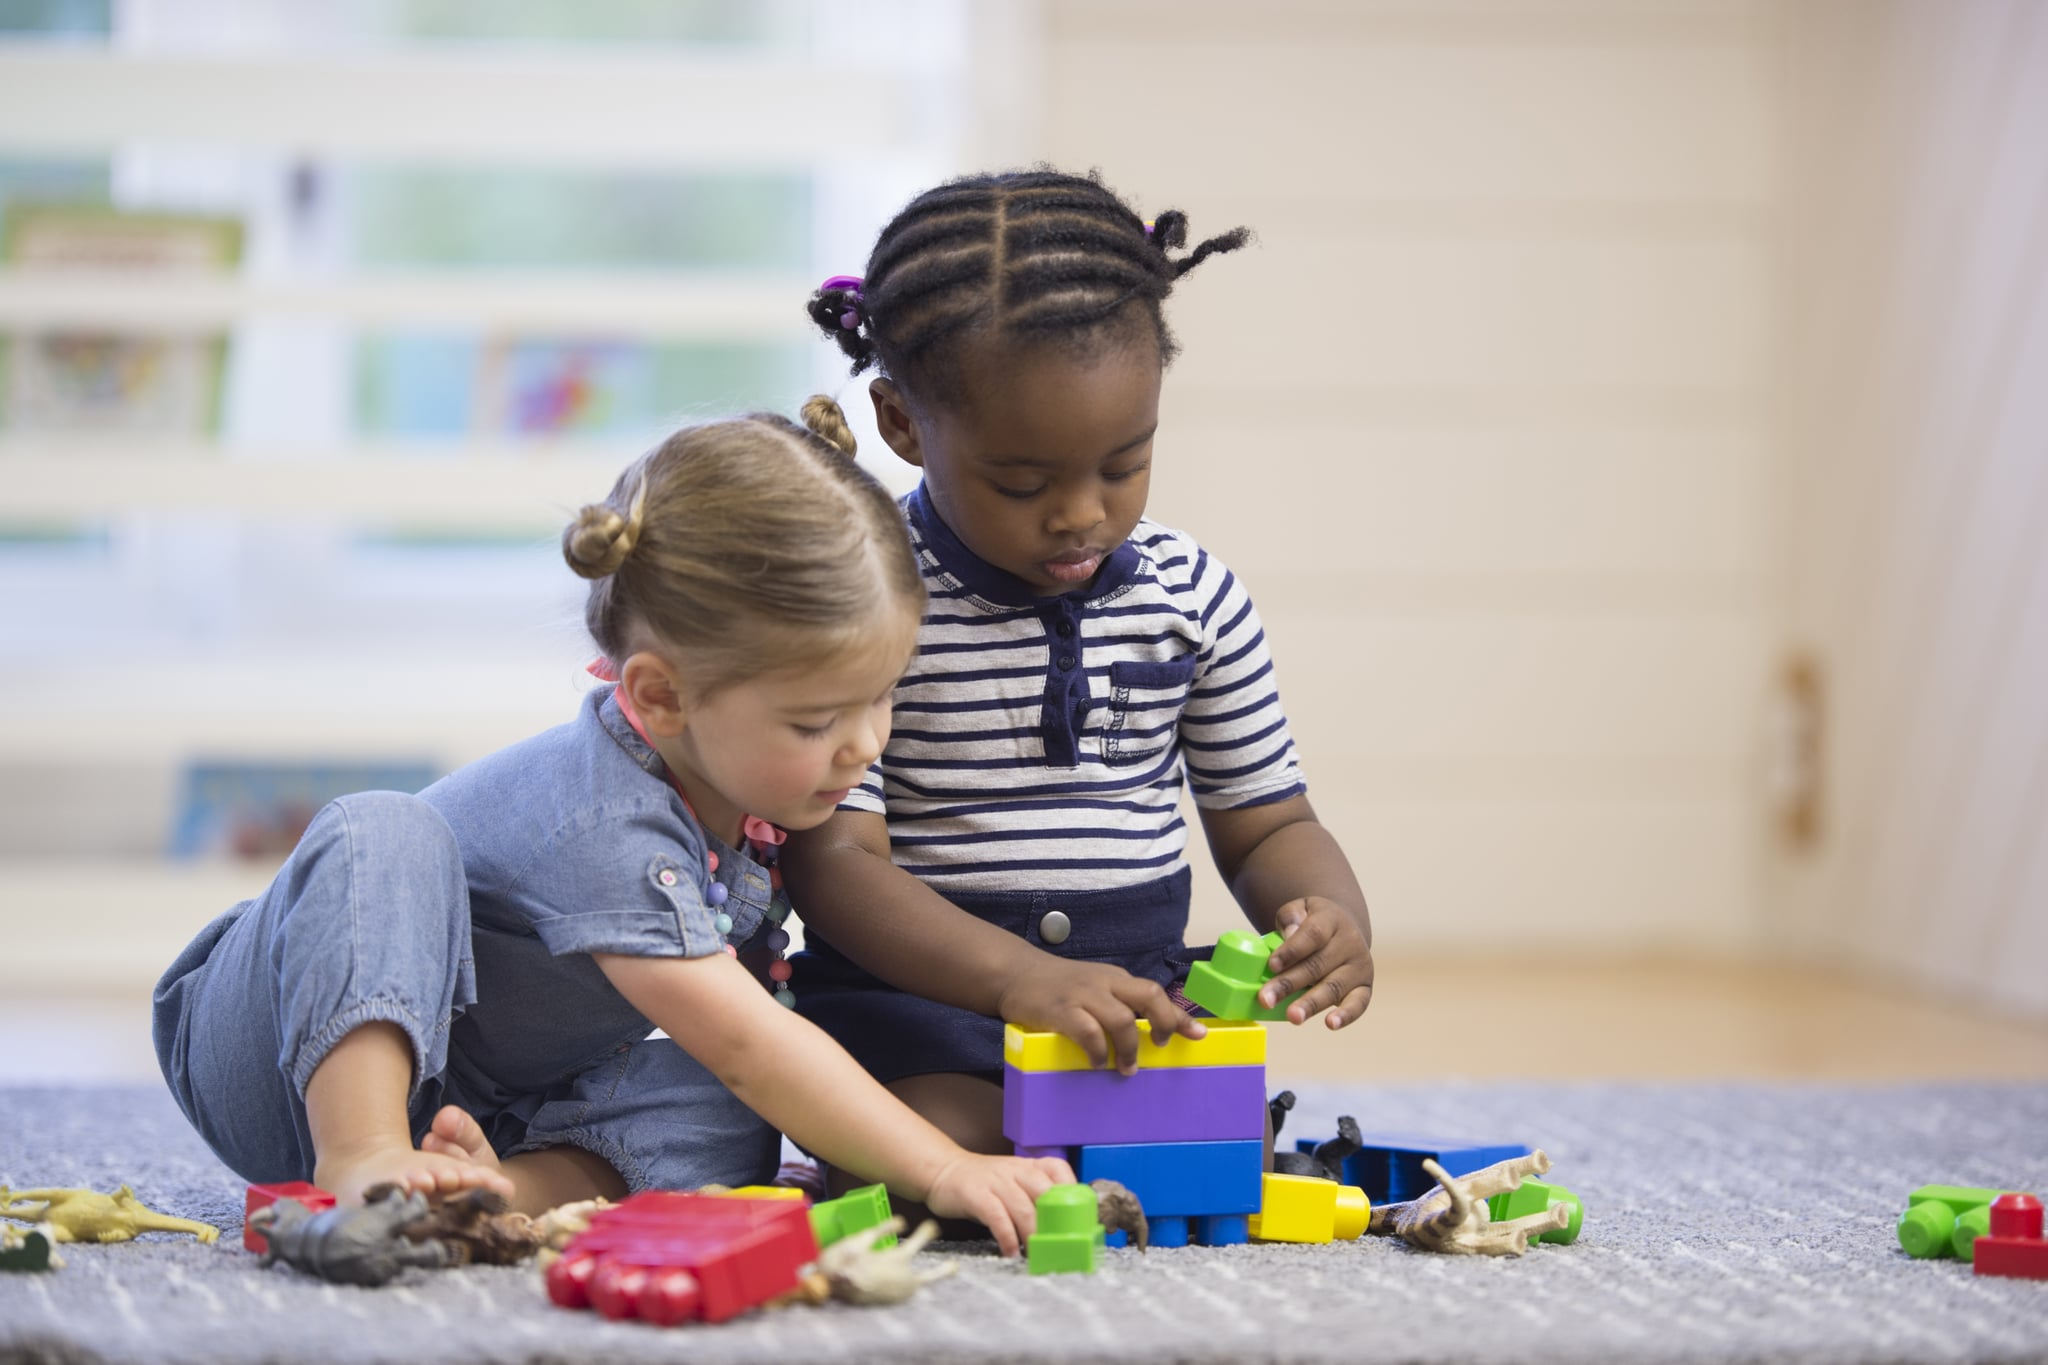 A multi-ethnic group of preschoolers are playing with plastic blocks together in class.